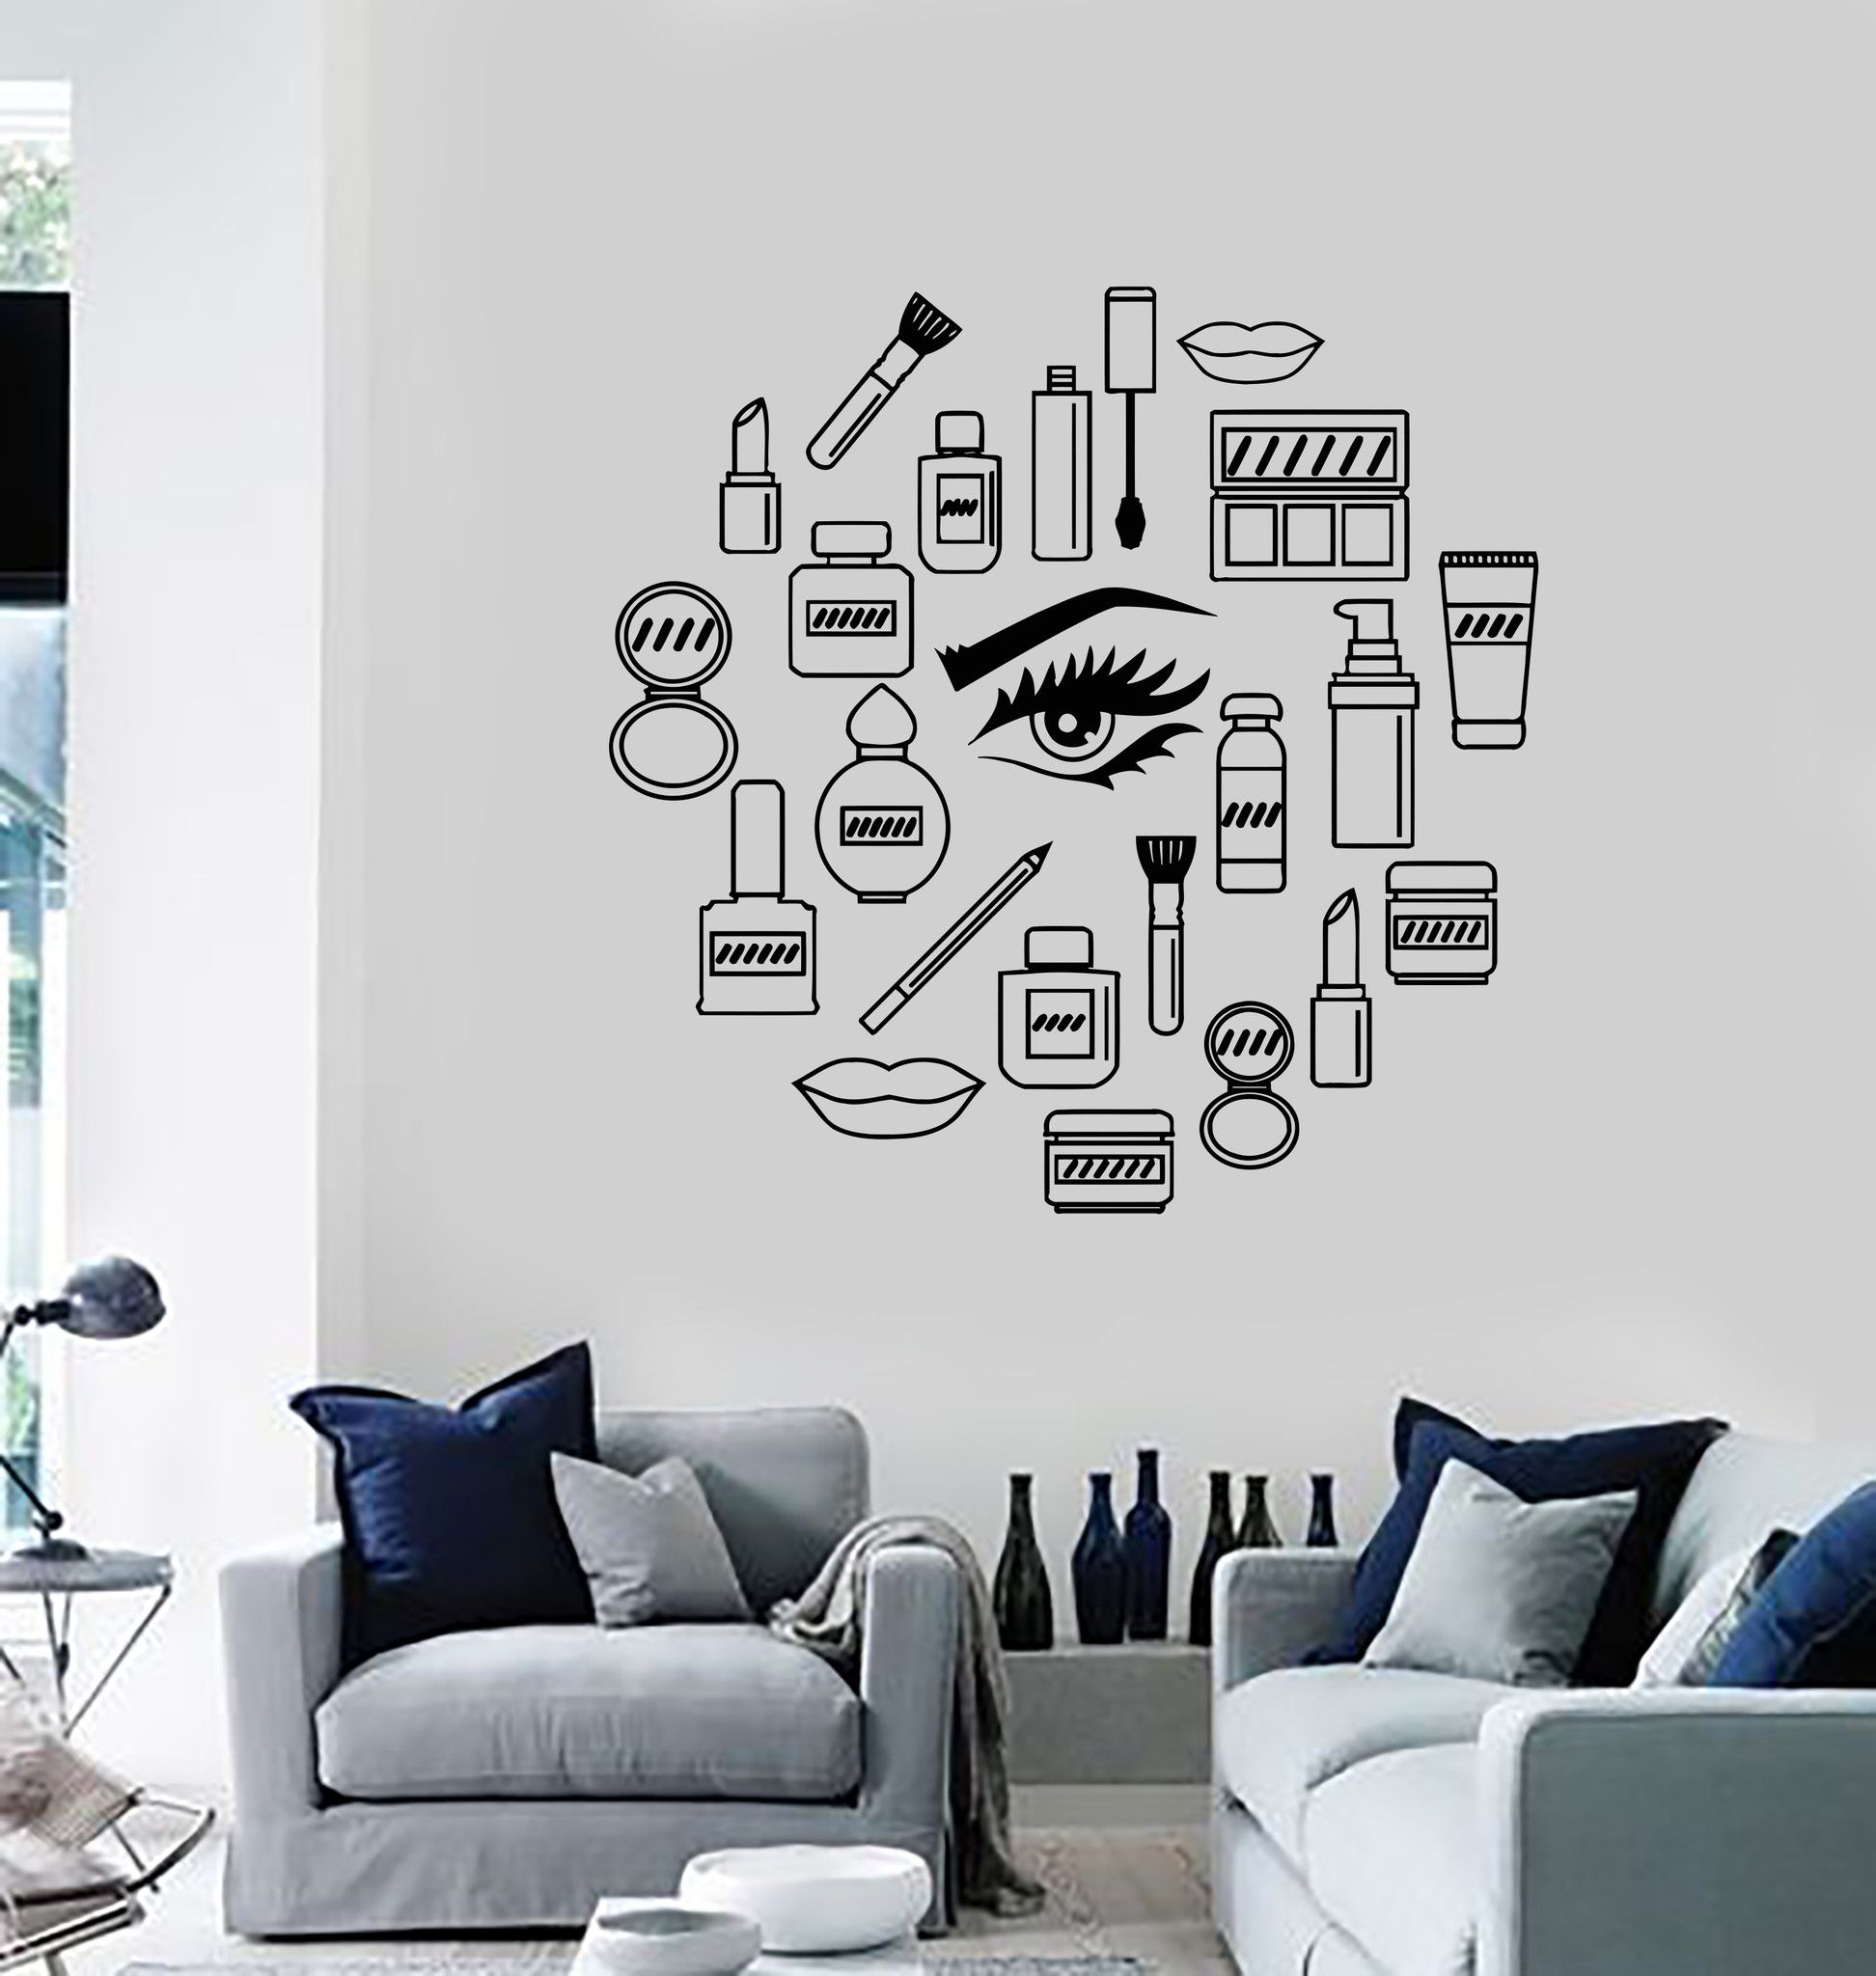 Vinyl Wall Decal Makeup Cosmetics Woman Girl Beauty Shop Stickers Unique Gift Ig3538 Wall Decor Decals Decal Wall Art Vinyl Wall Decals